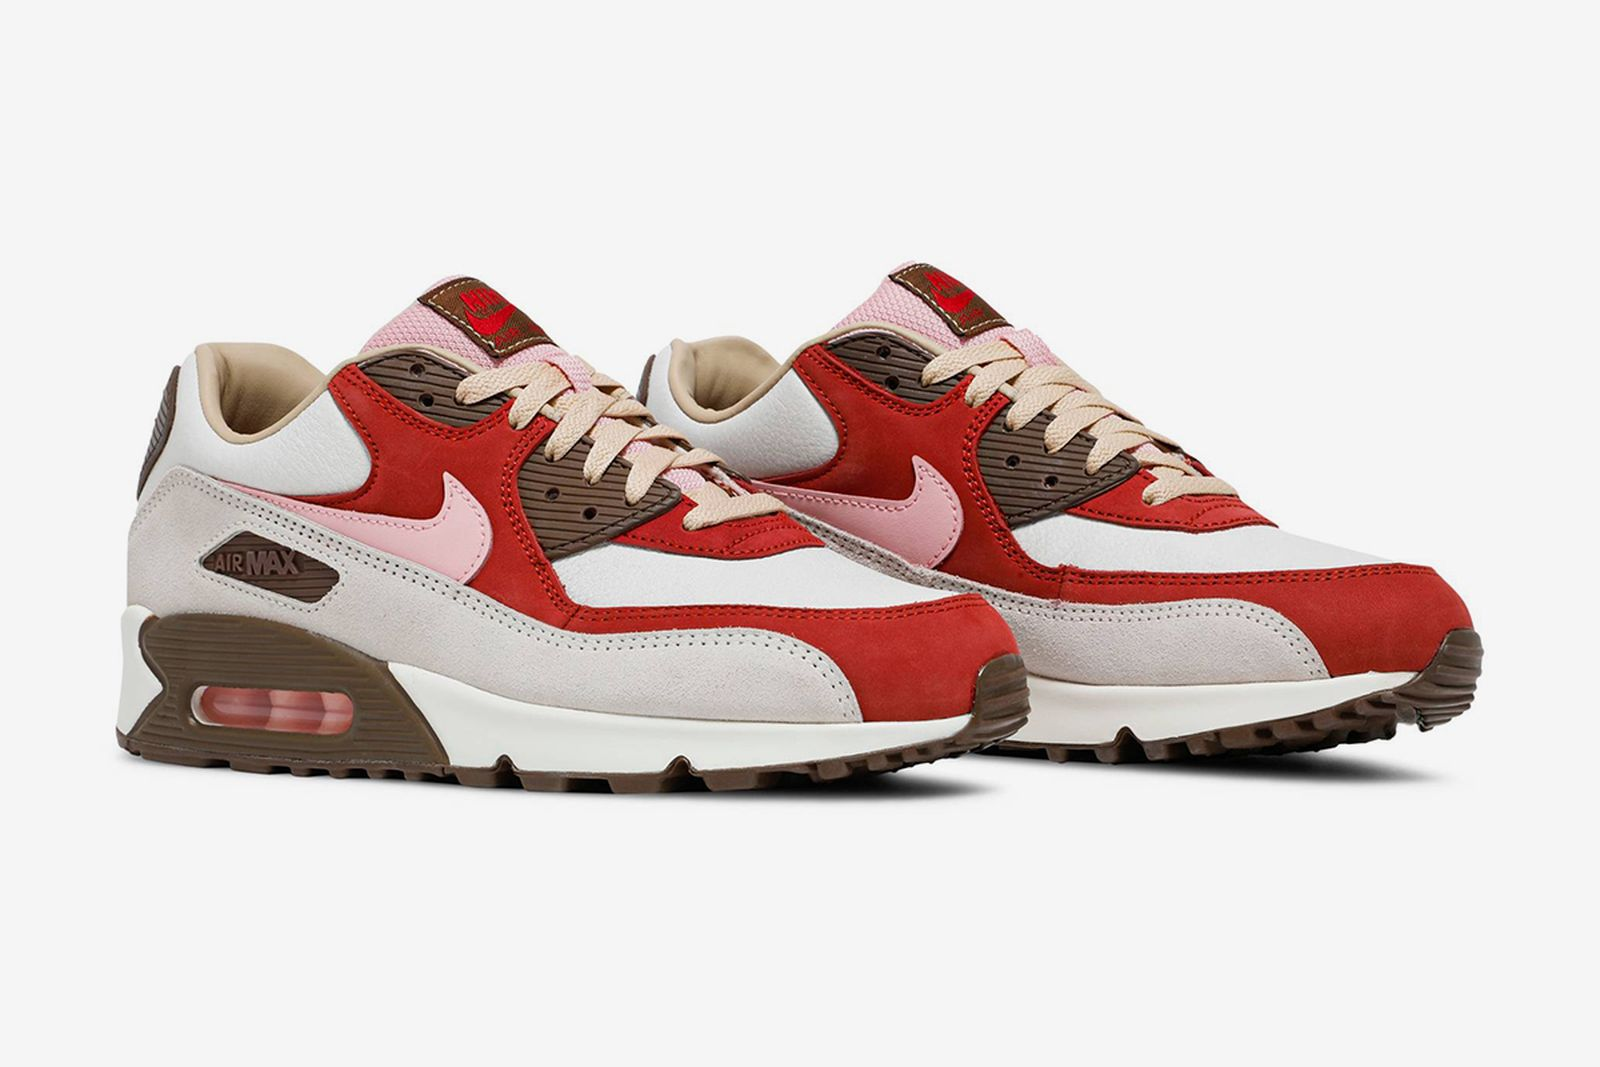 nike-air-max-90-bacon-2021-release-info-00